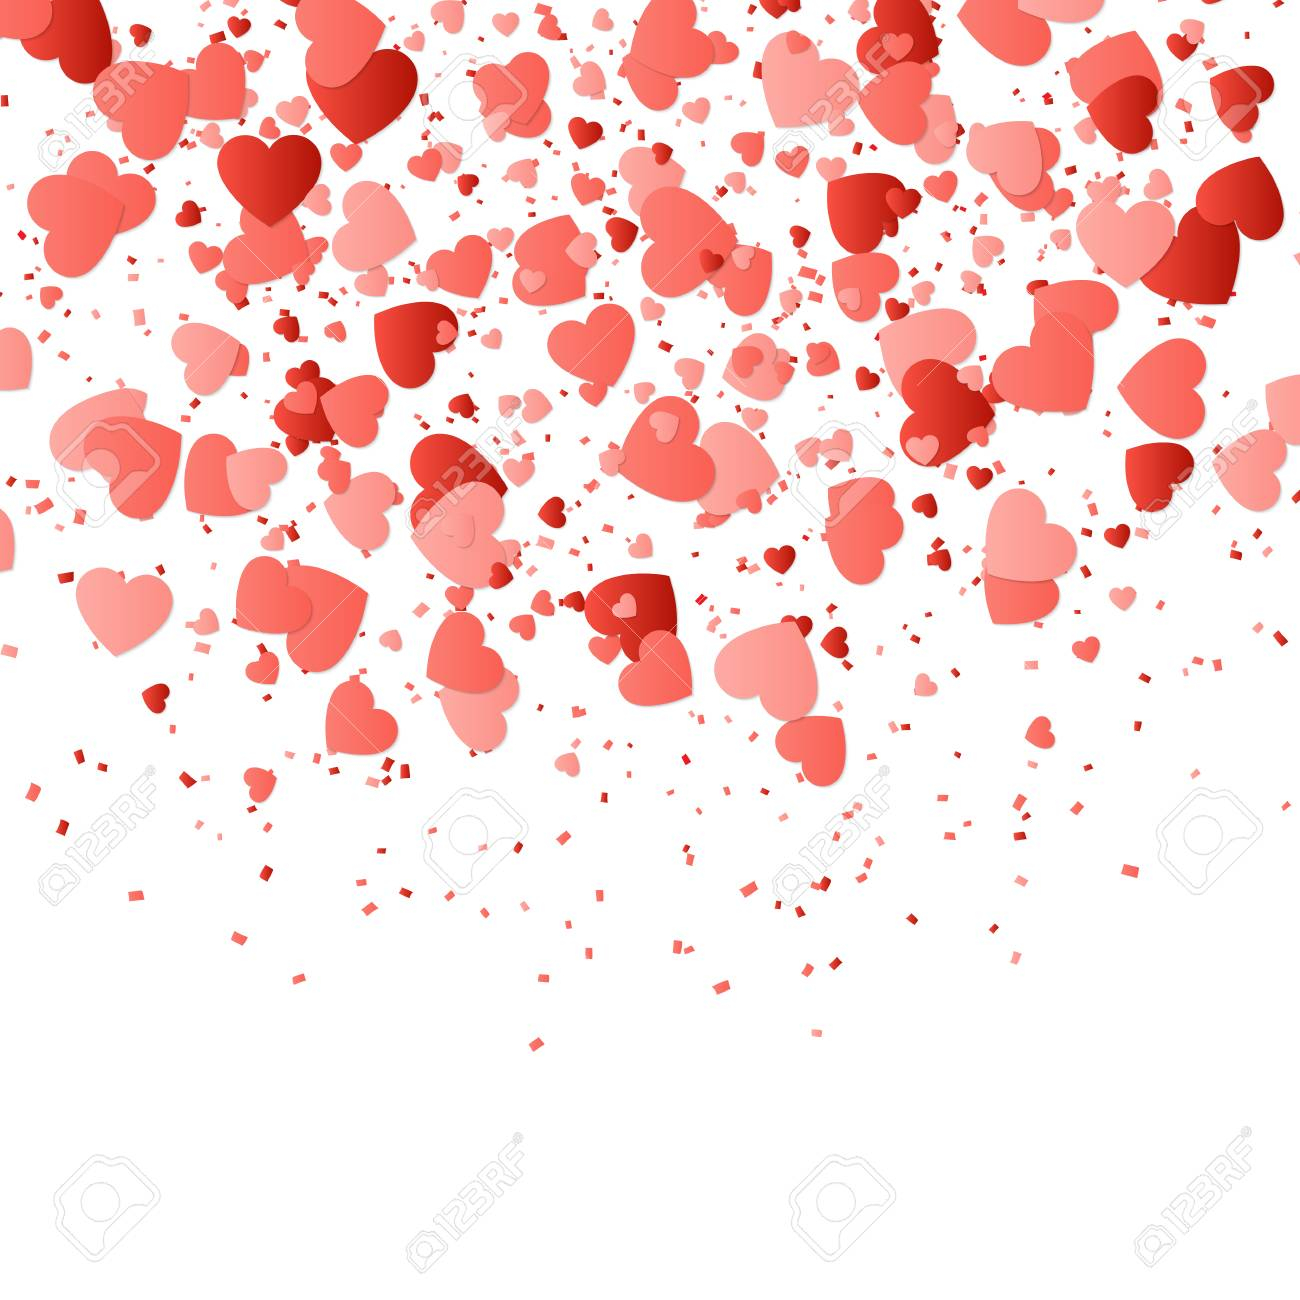 photo stock vector valentines day background with confetti in the shape of hearts